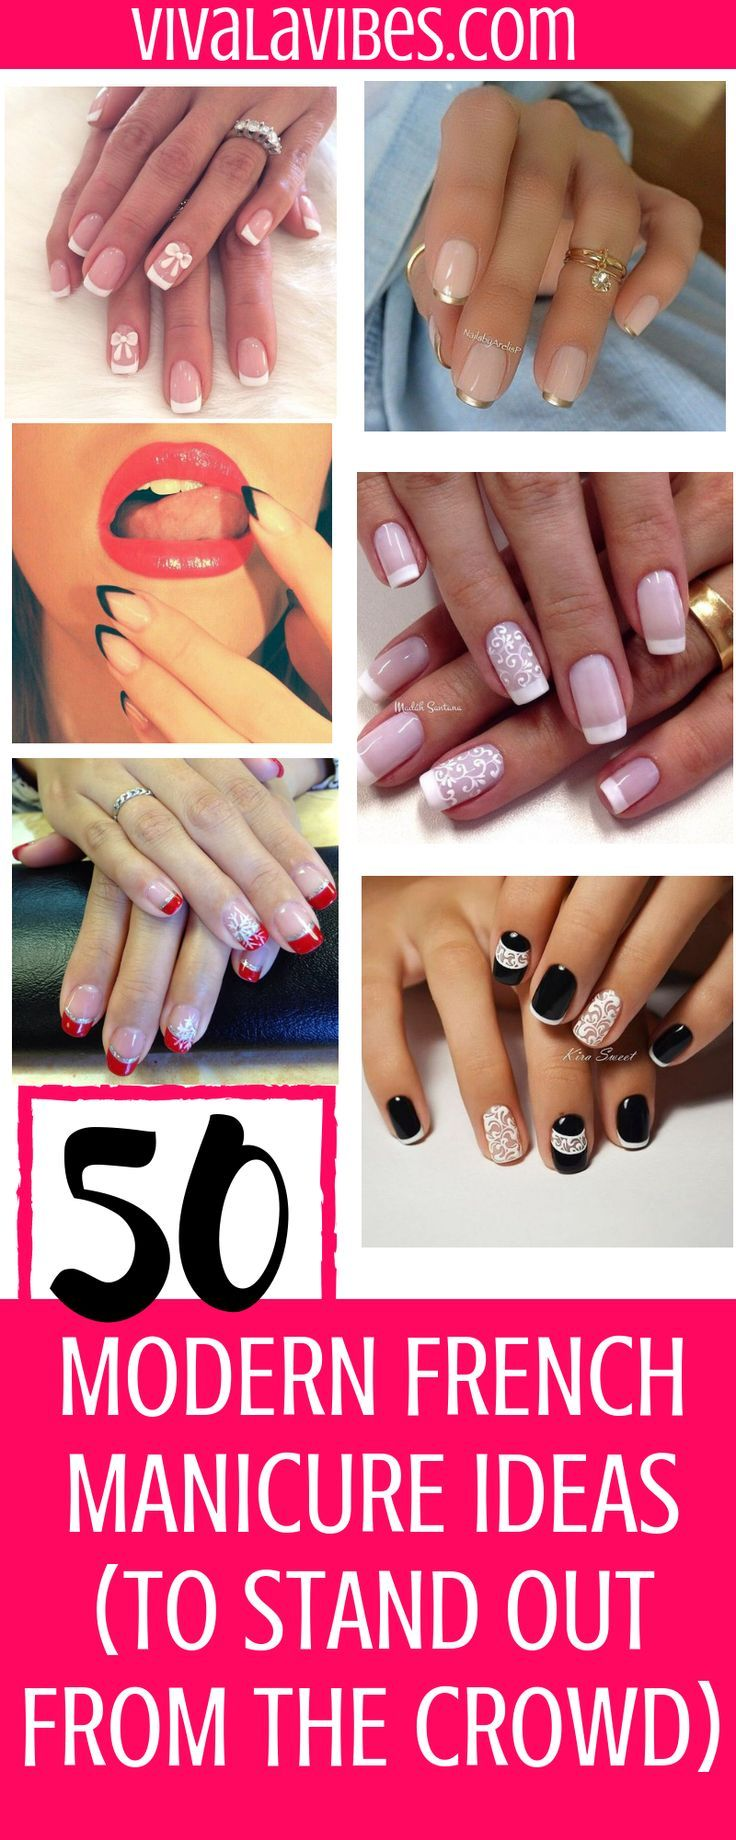 Modern French Manicure DesignIdeas To Stand Out from The Crowd